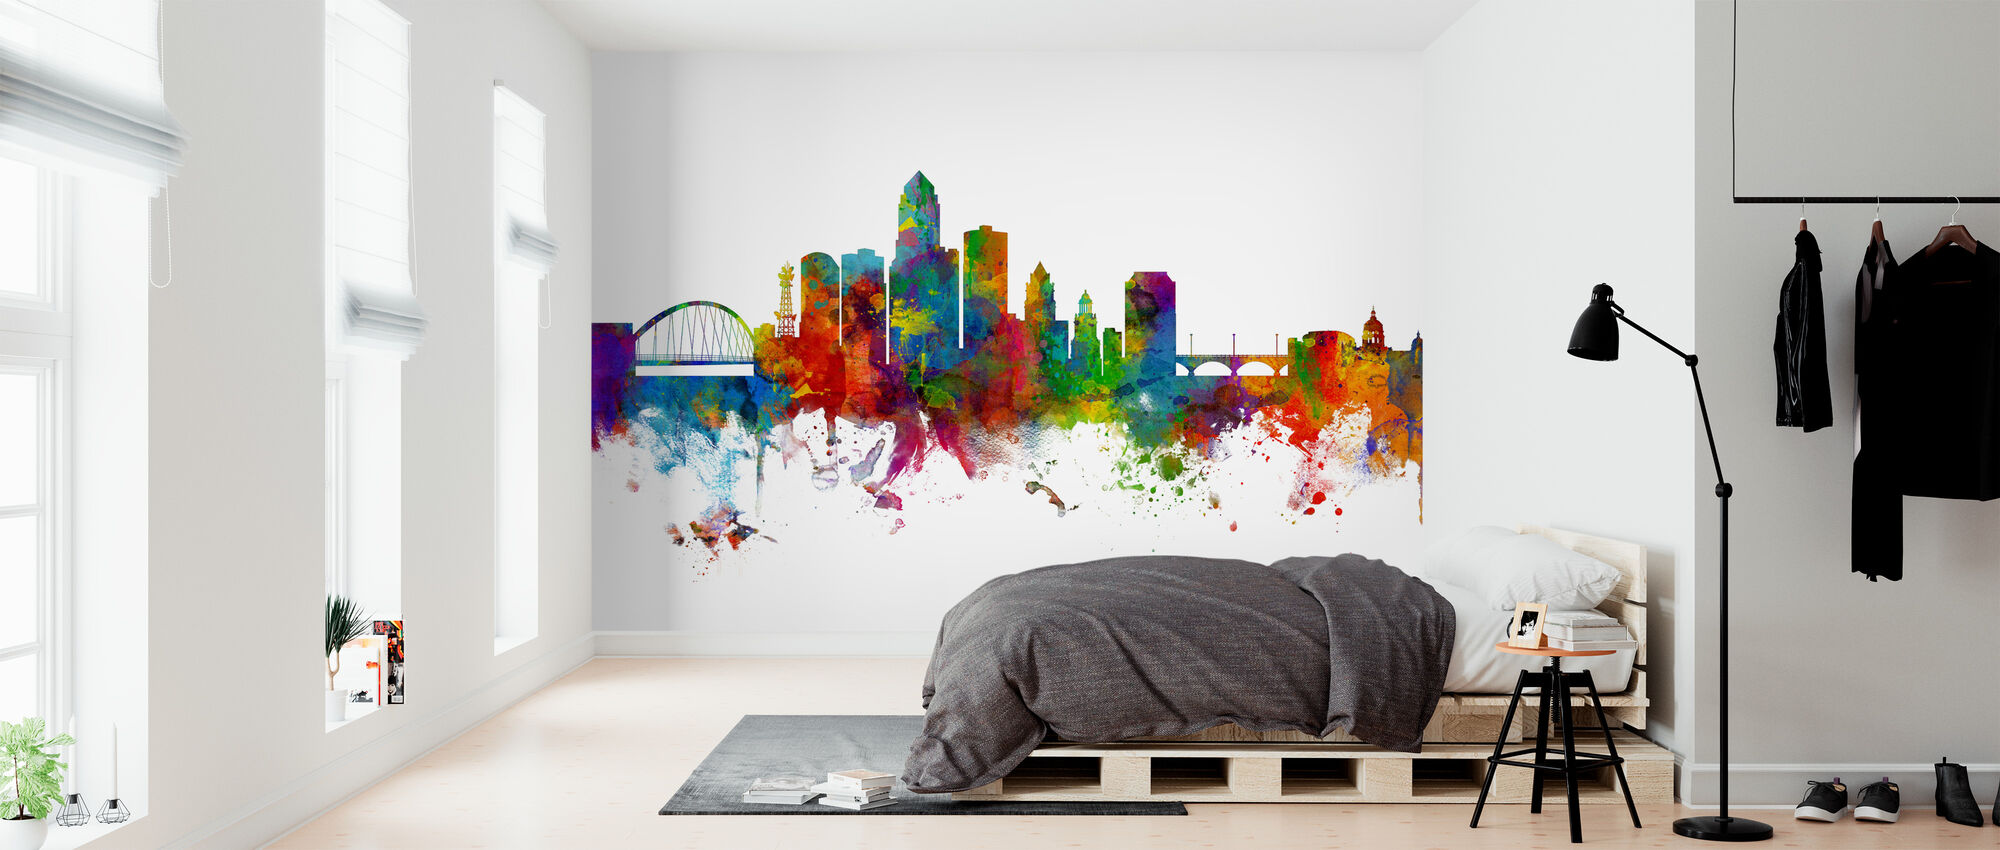 Des Moines Iowa Skyline - Wallpaper - Bedroom